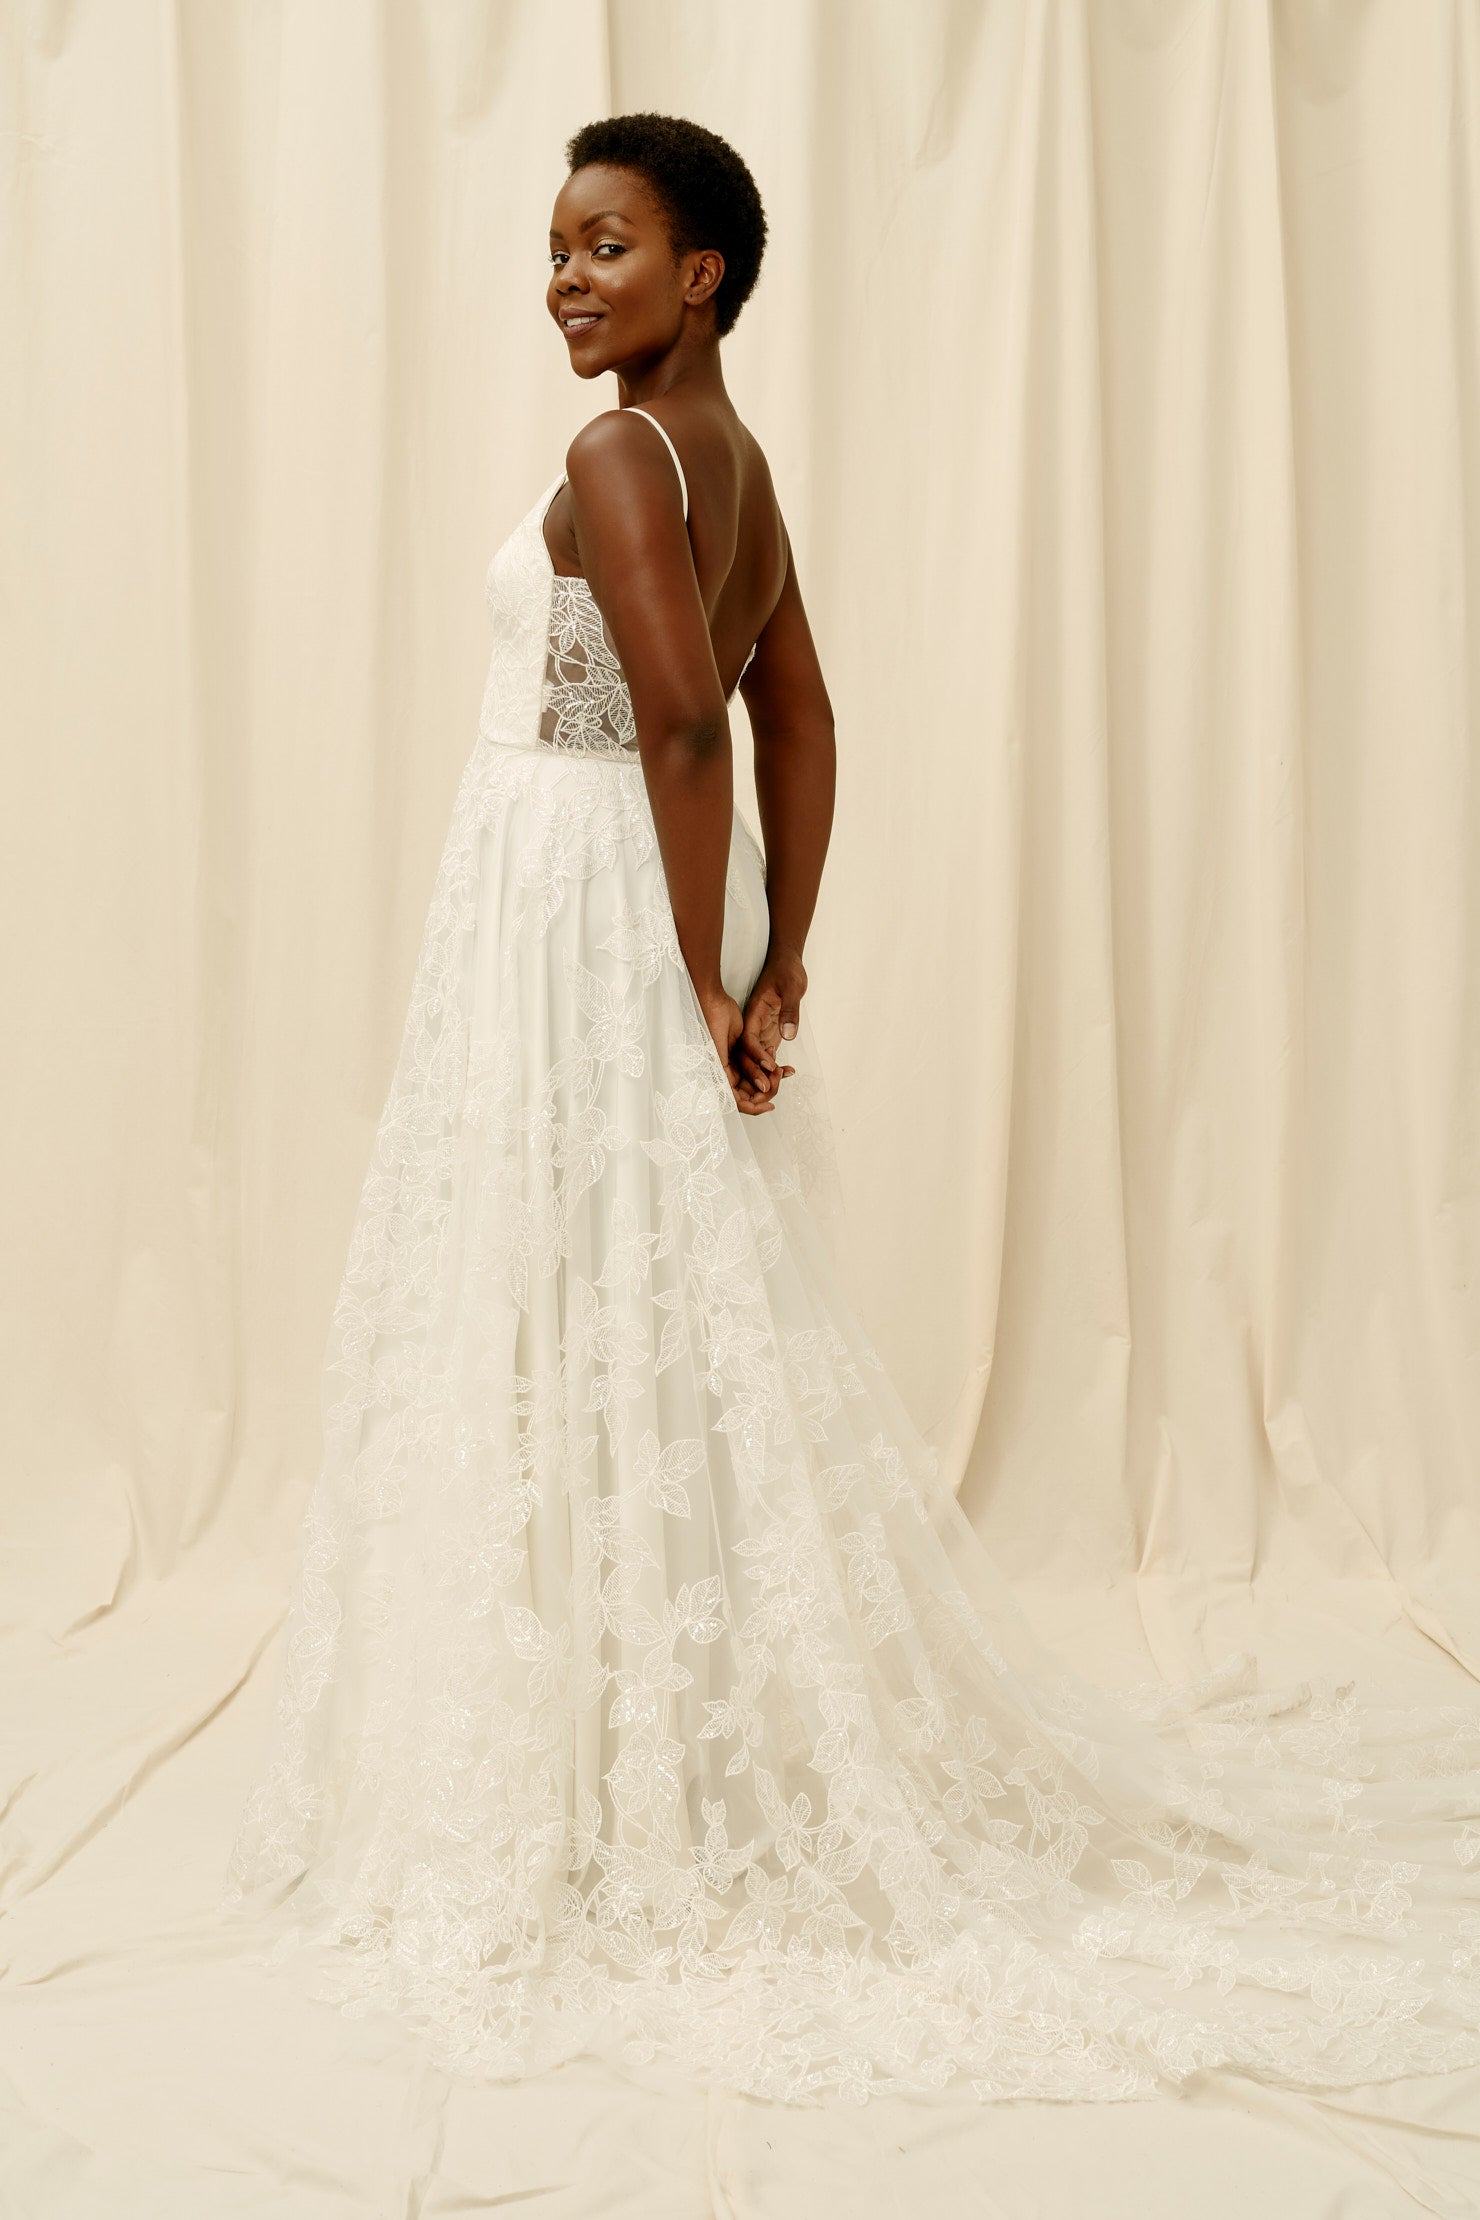 Scoop back wedding dress with a long train